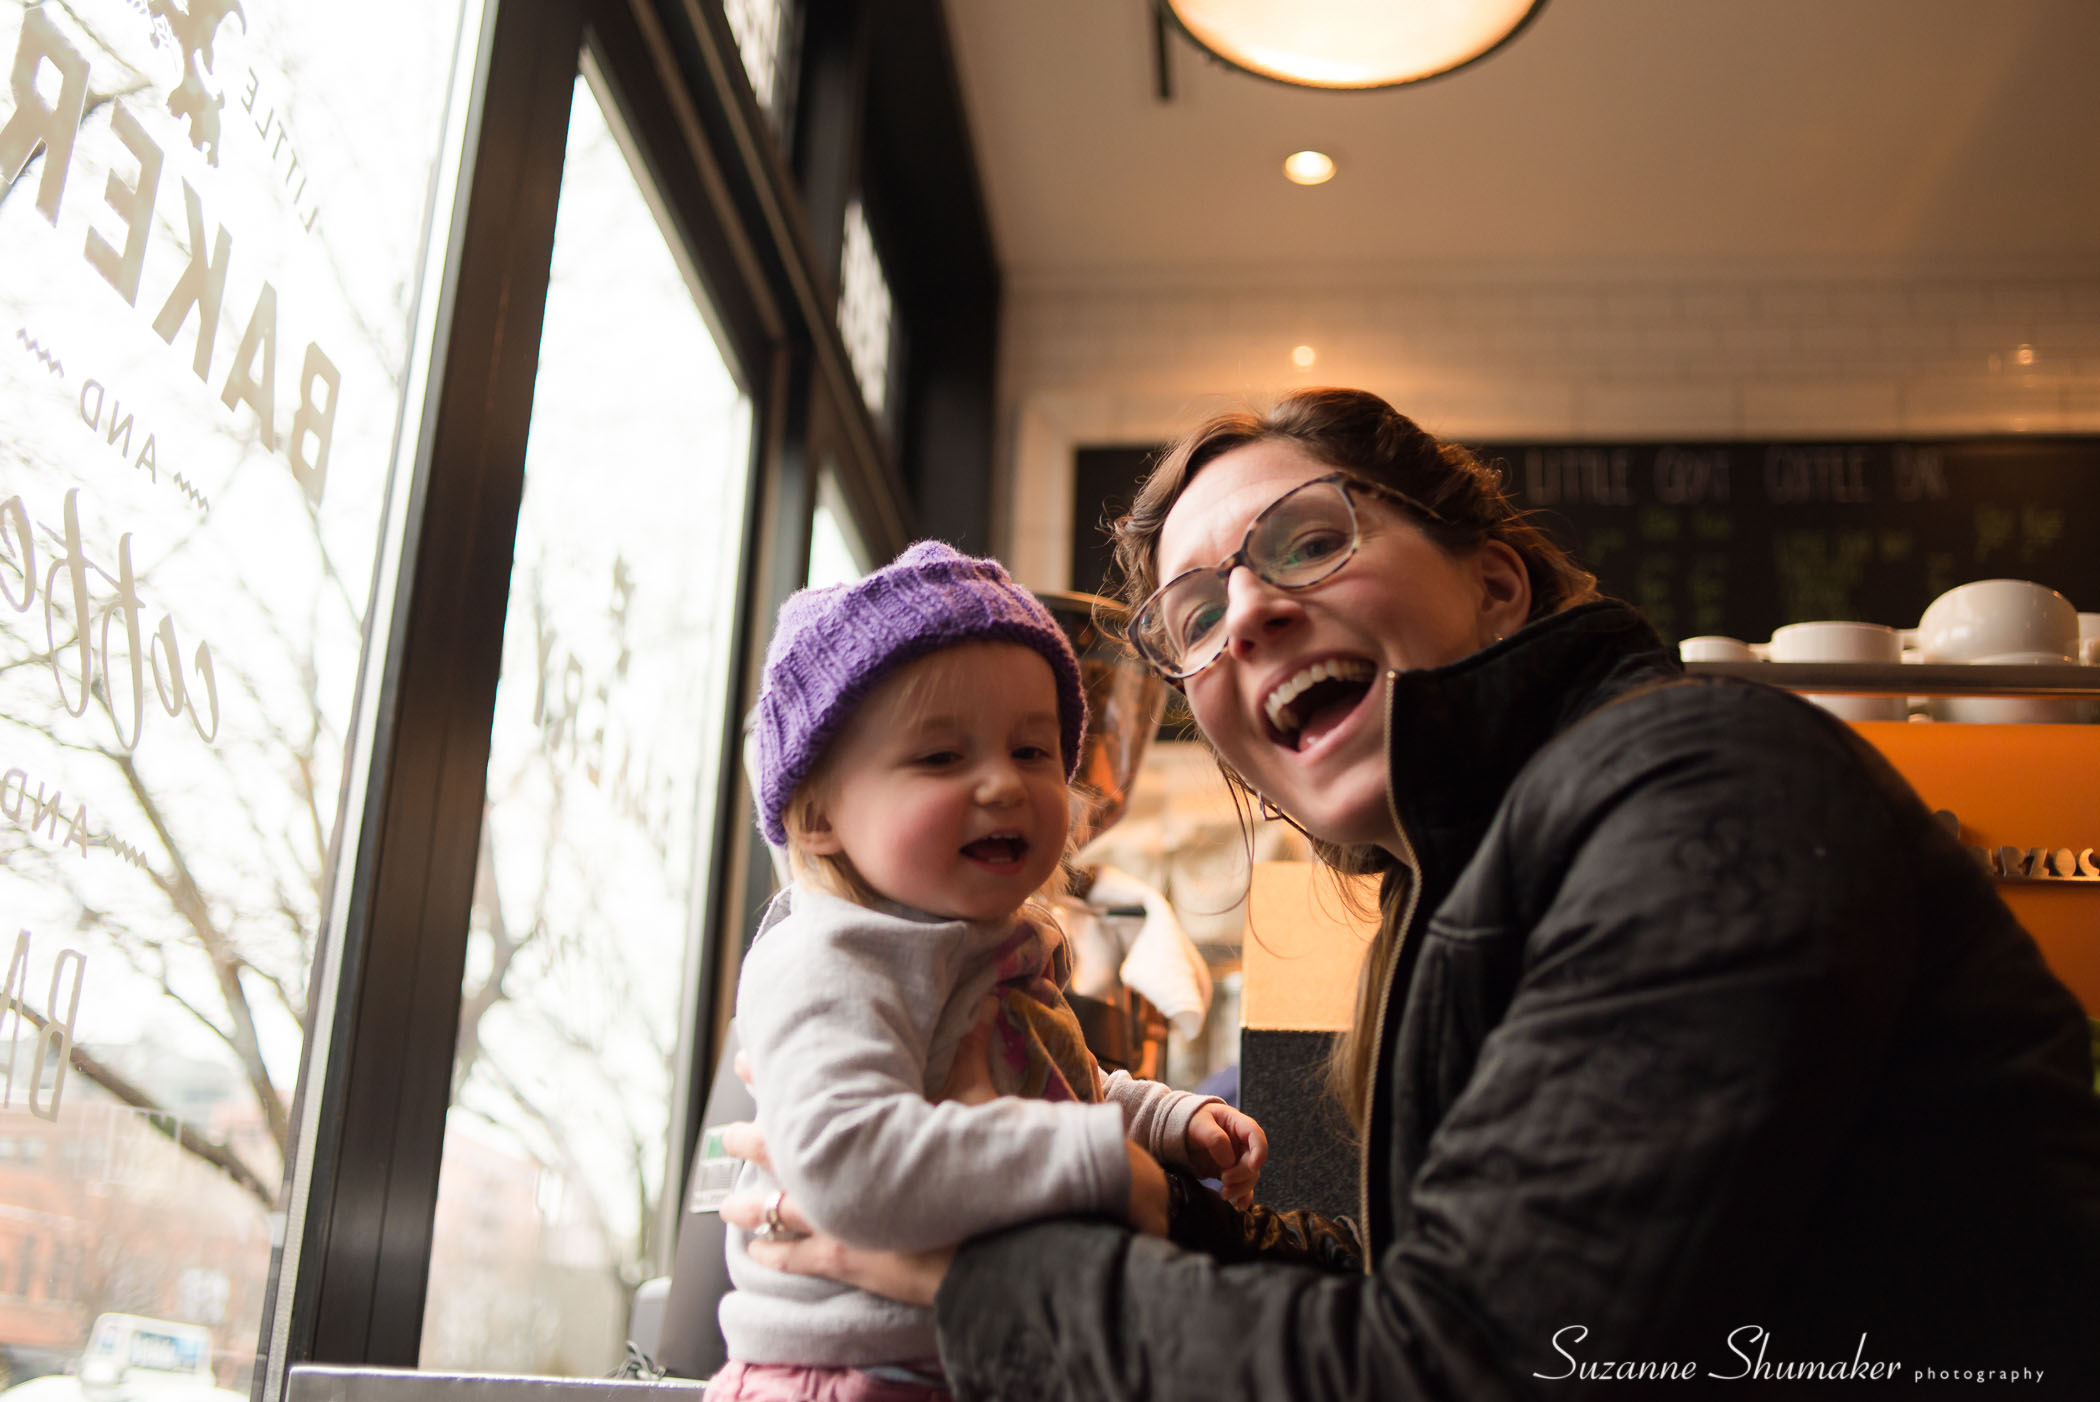 My Sister and Niece ~ At the Girl and the Goat